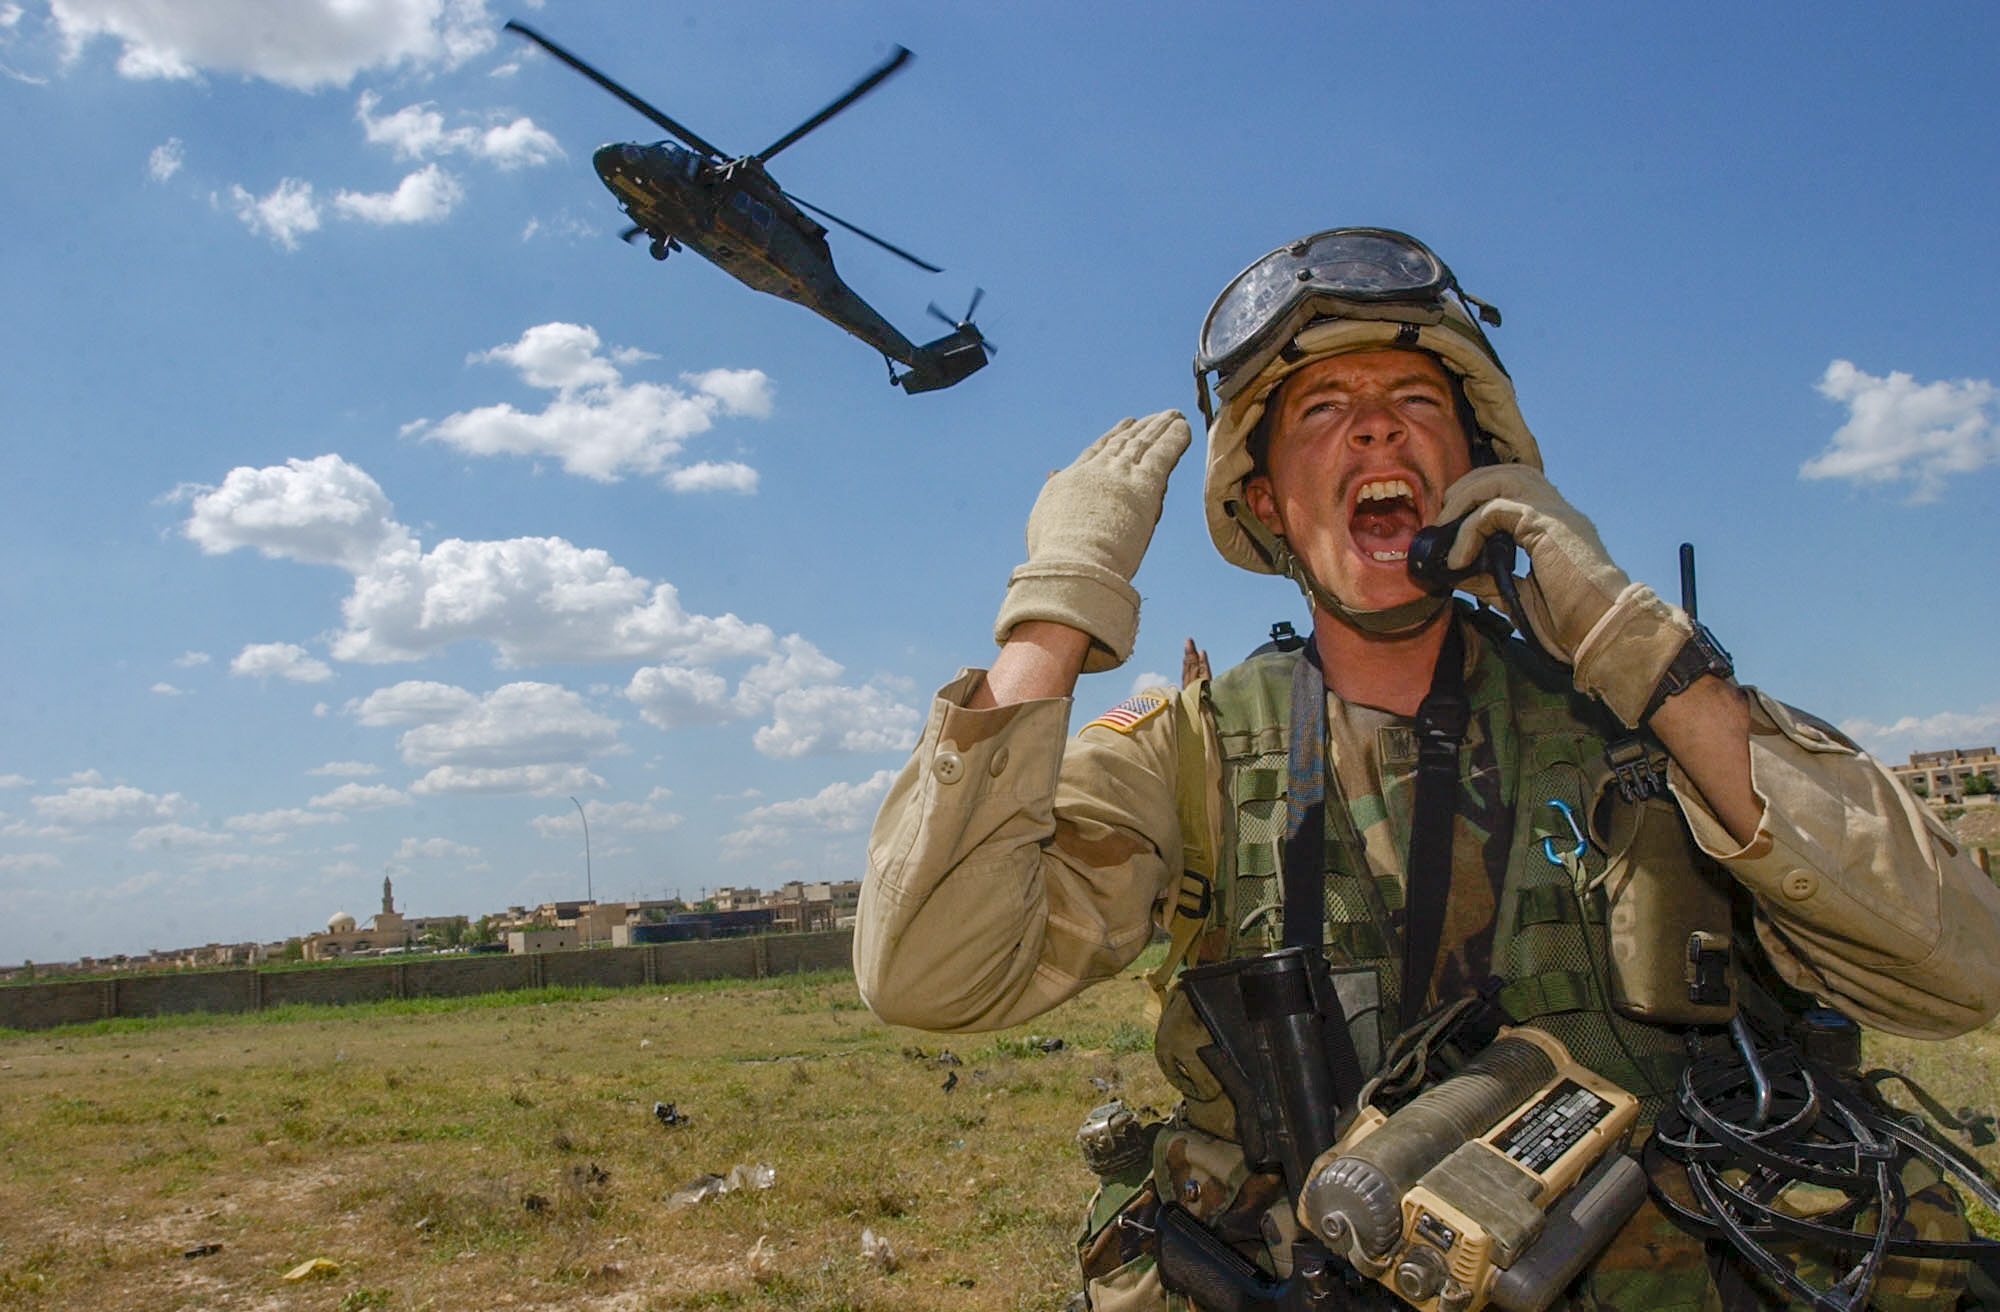 Sgt. Daniel Wiser, 25, of Waukesha, WI,yells to his section to haul ass back to the landing zone as he talks to the Blackhawk pilots before reboarding the plane as soldiers inspect vehicles in Mosul Wednesday, 4/30/03. The headquarters mortars, 3rd Battalion, 502nd Infantry Regiment, 101st Airborne Division (Air Assault) section is using the UH-60 Blackhawk helicopter to conduct searches to locate and shut down black market activity in the third largest city in Iraq. (Rob Curtis/Army Times)